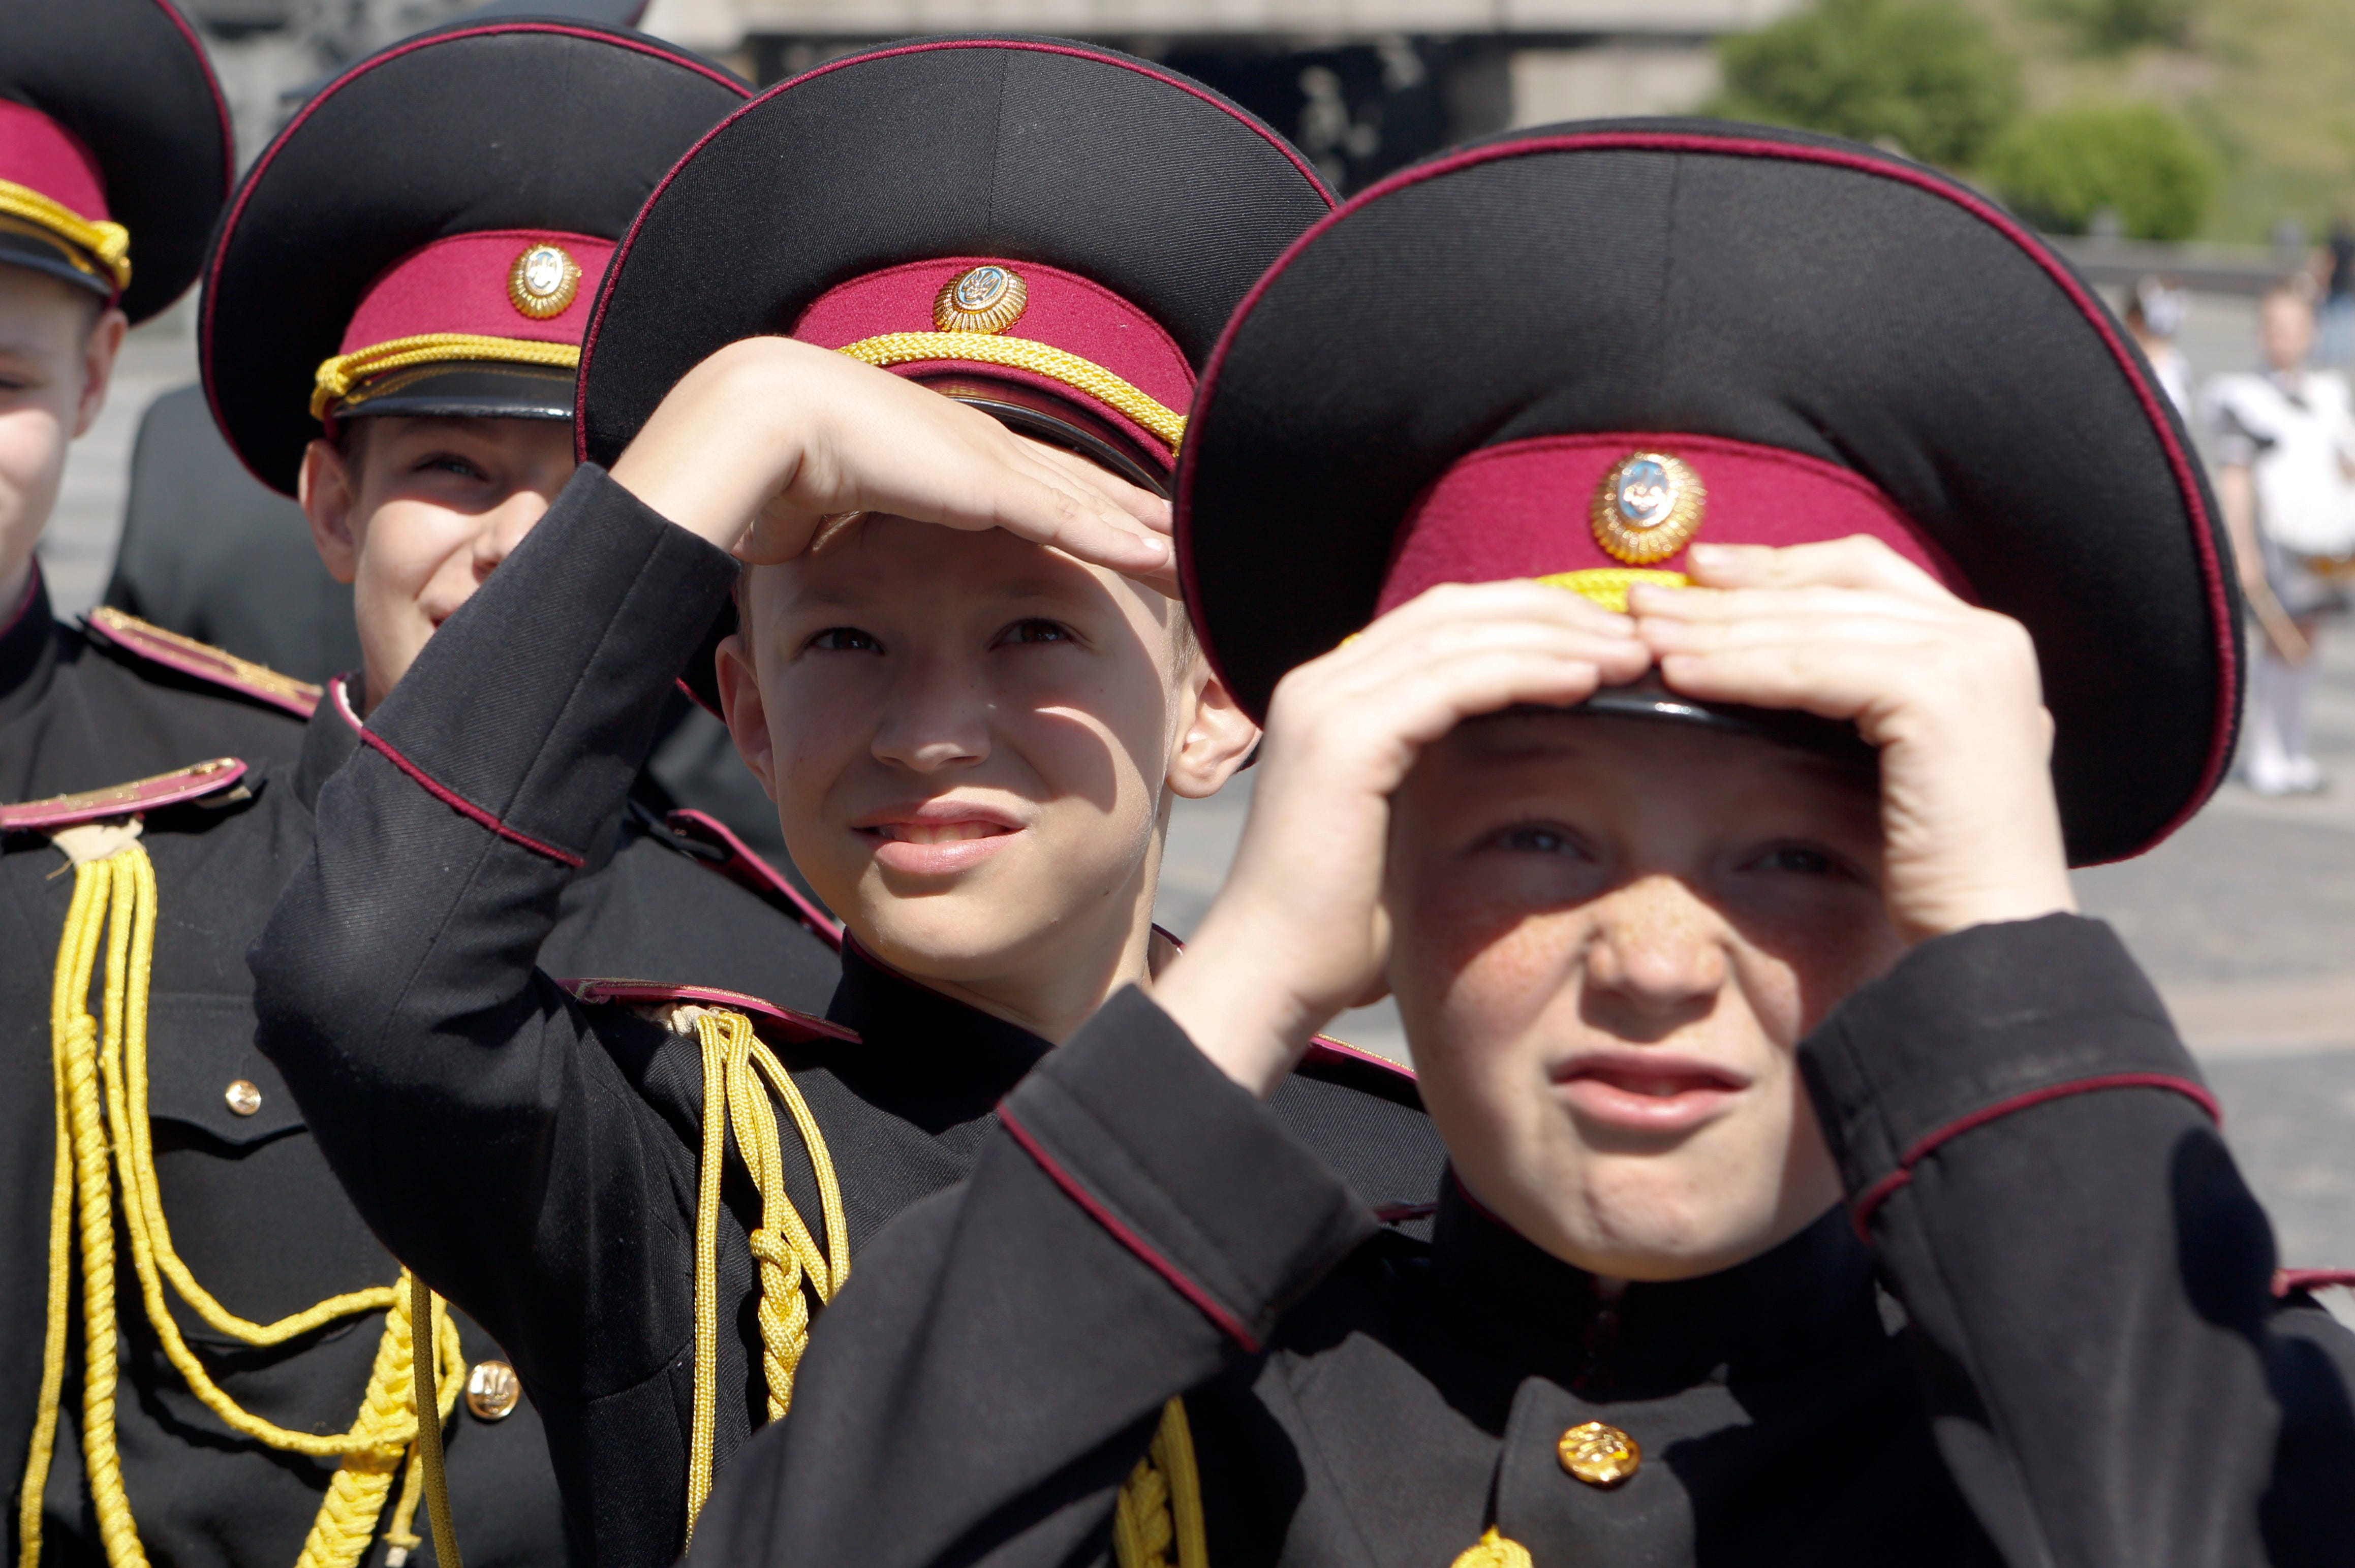 Young cadets watch the parade of Kiev military schools timed to celebrate Victory Day at the WWII memorial in Kiev, Ukraine.